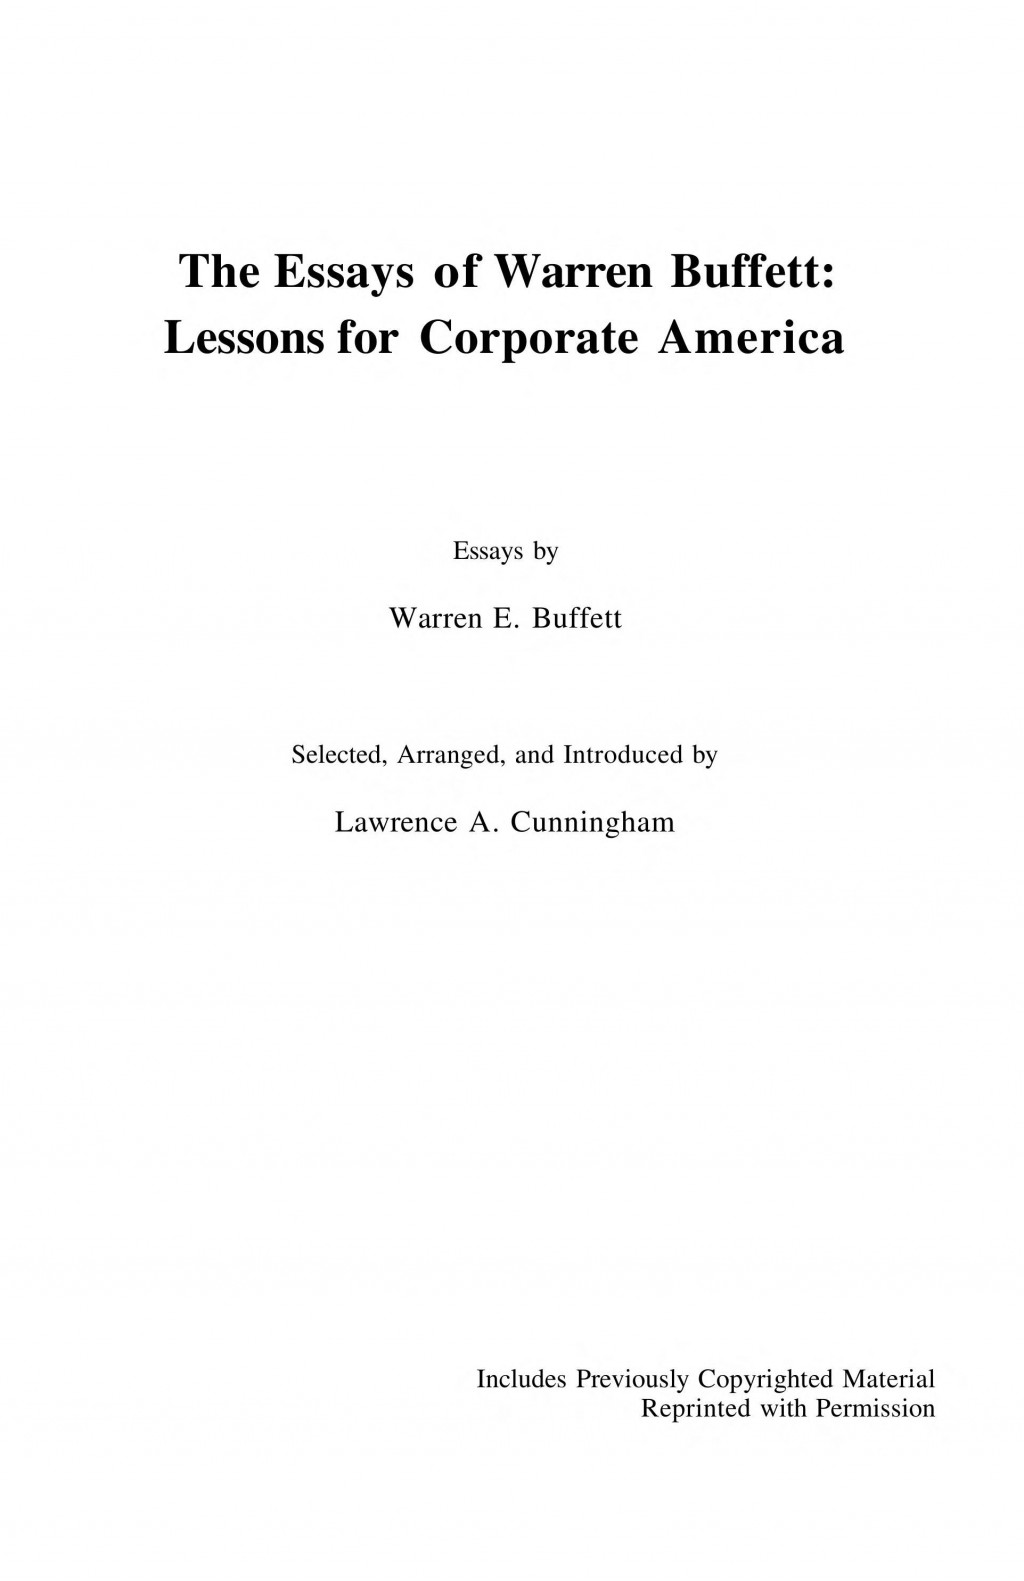 019 The Essays Of Warren Buffett Lessons For Corporate America Essay Example Remarkable Third Edition 3rd Second Pdf Audio Book Large